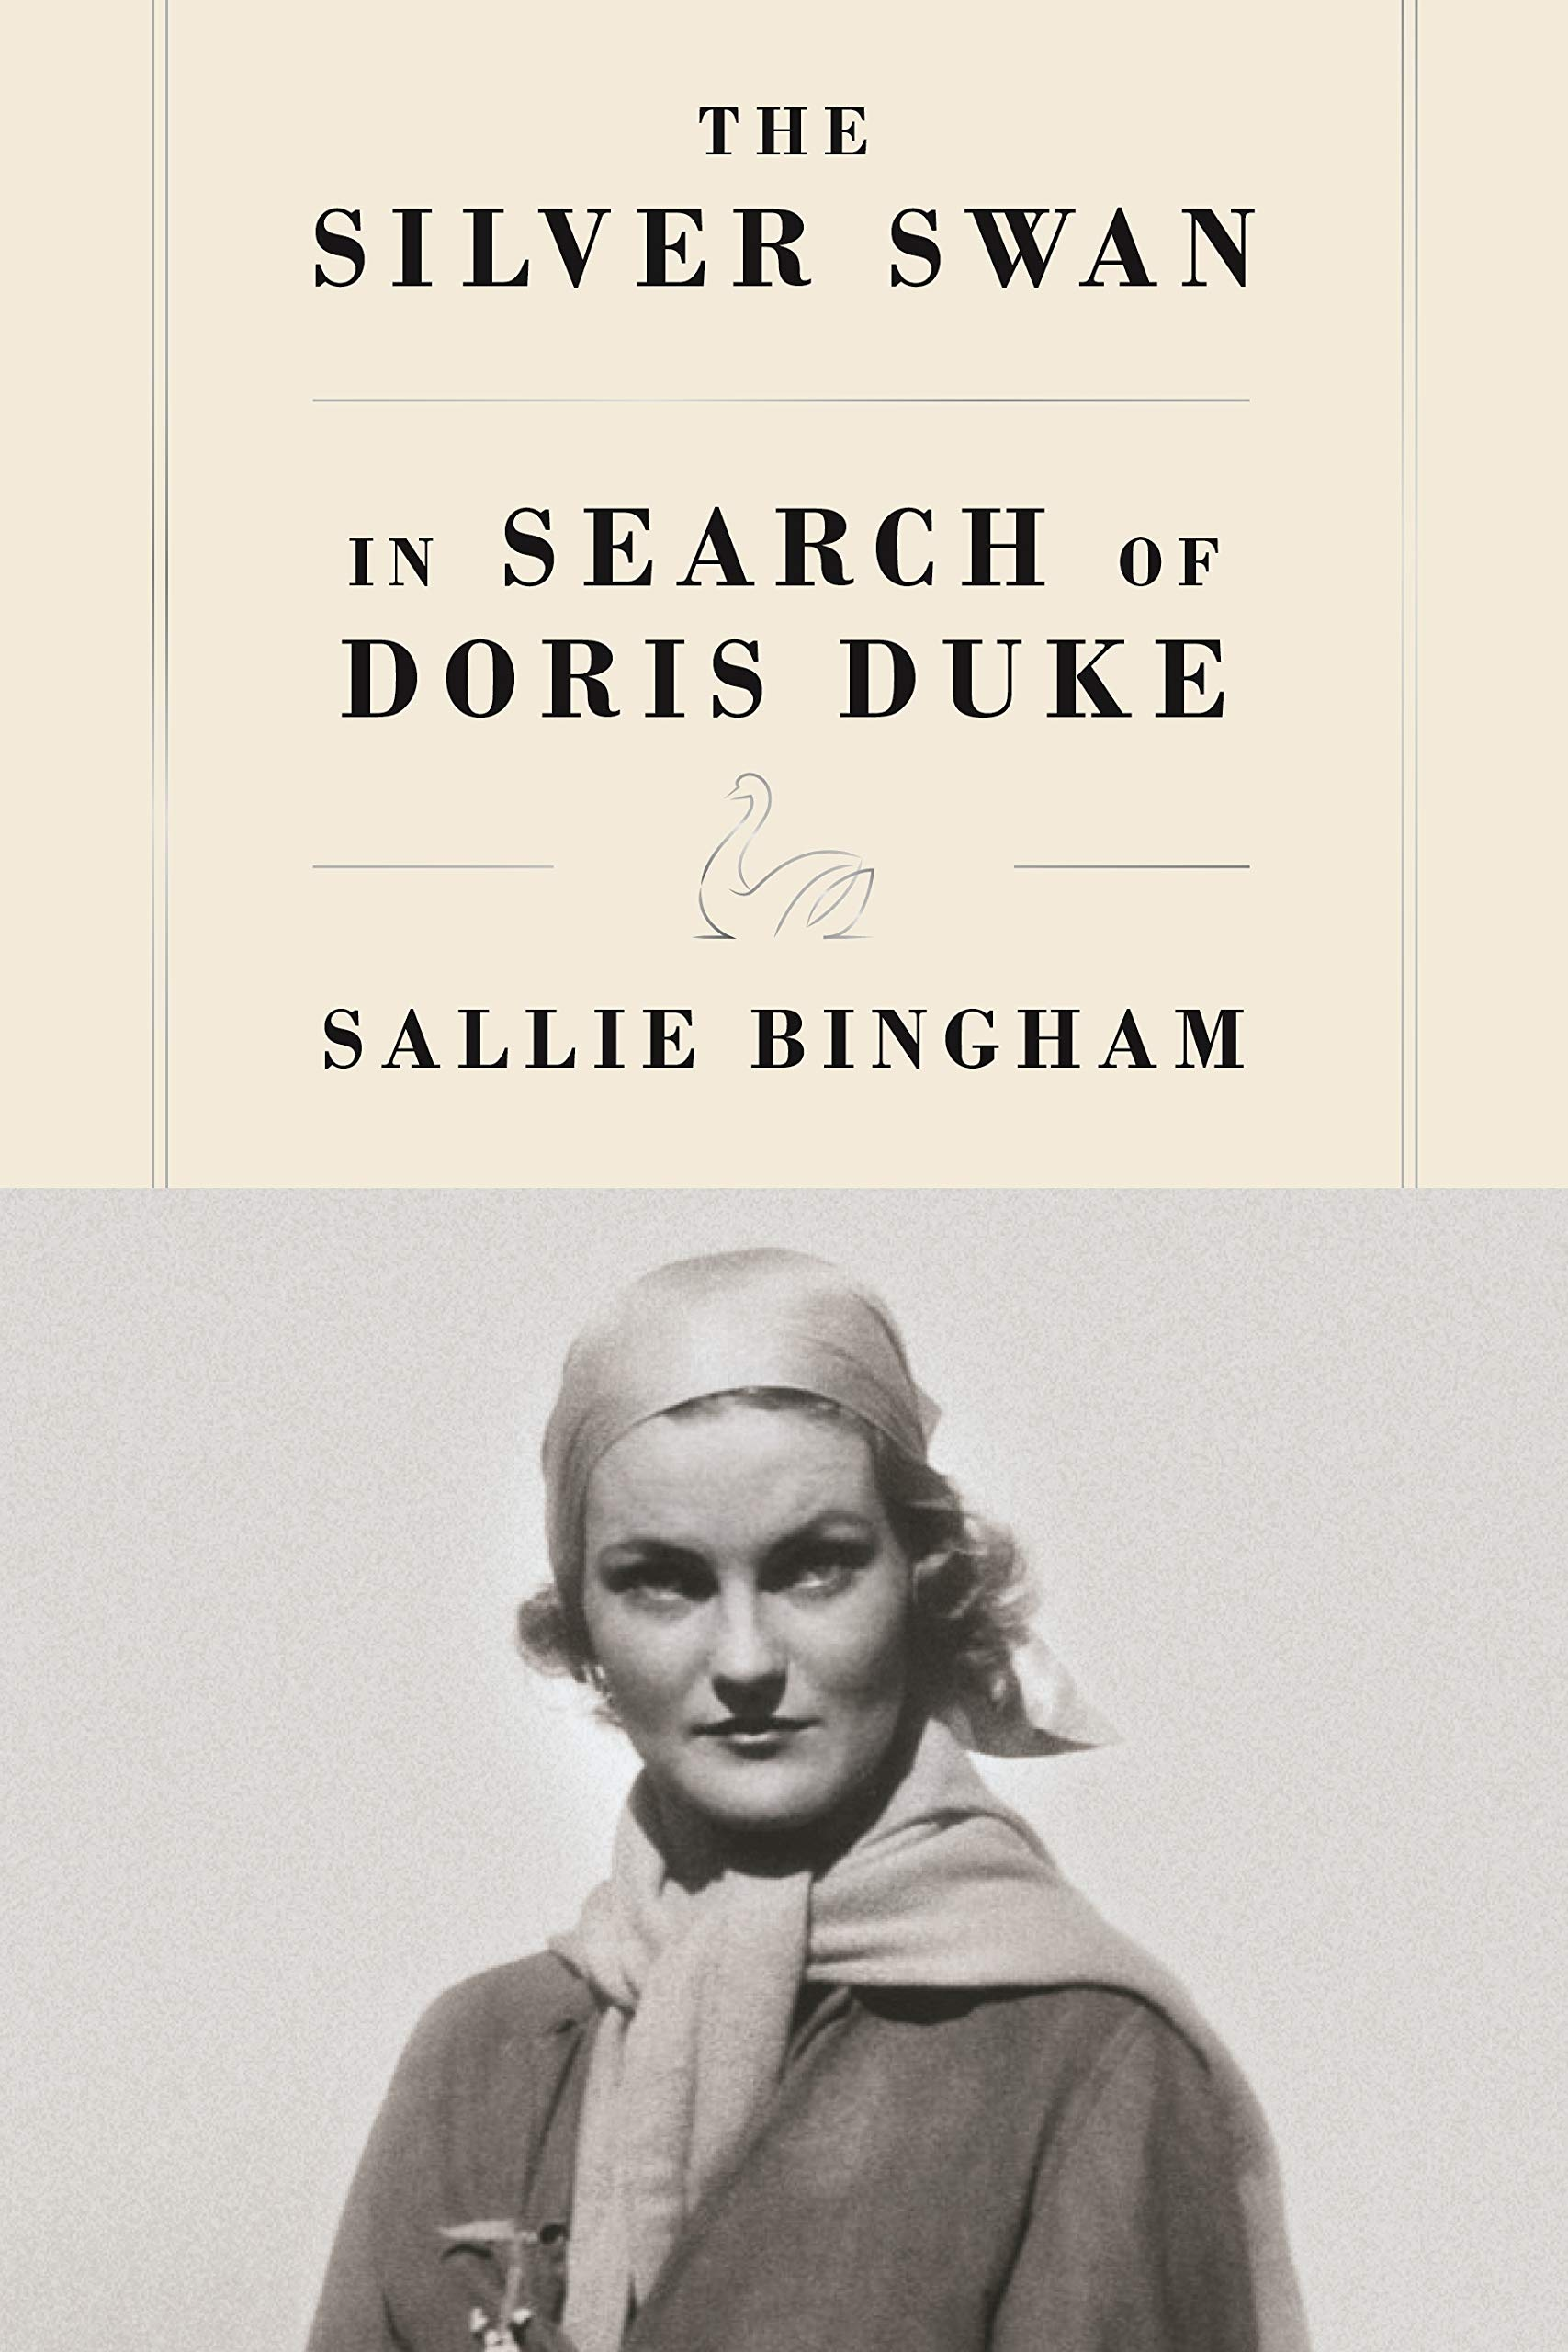 Book jacket of The Silver Swan - In Search of Doris Duke